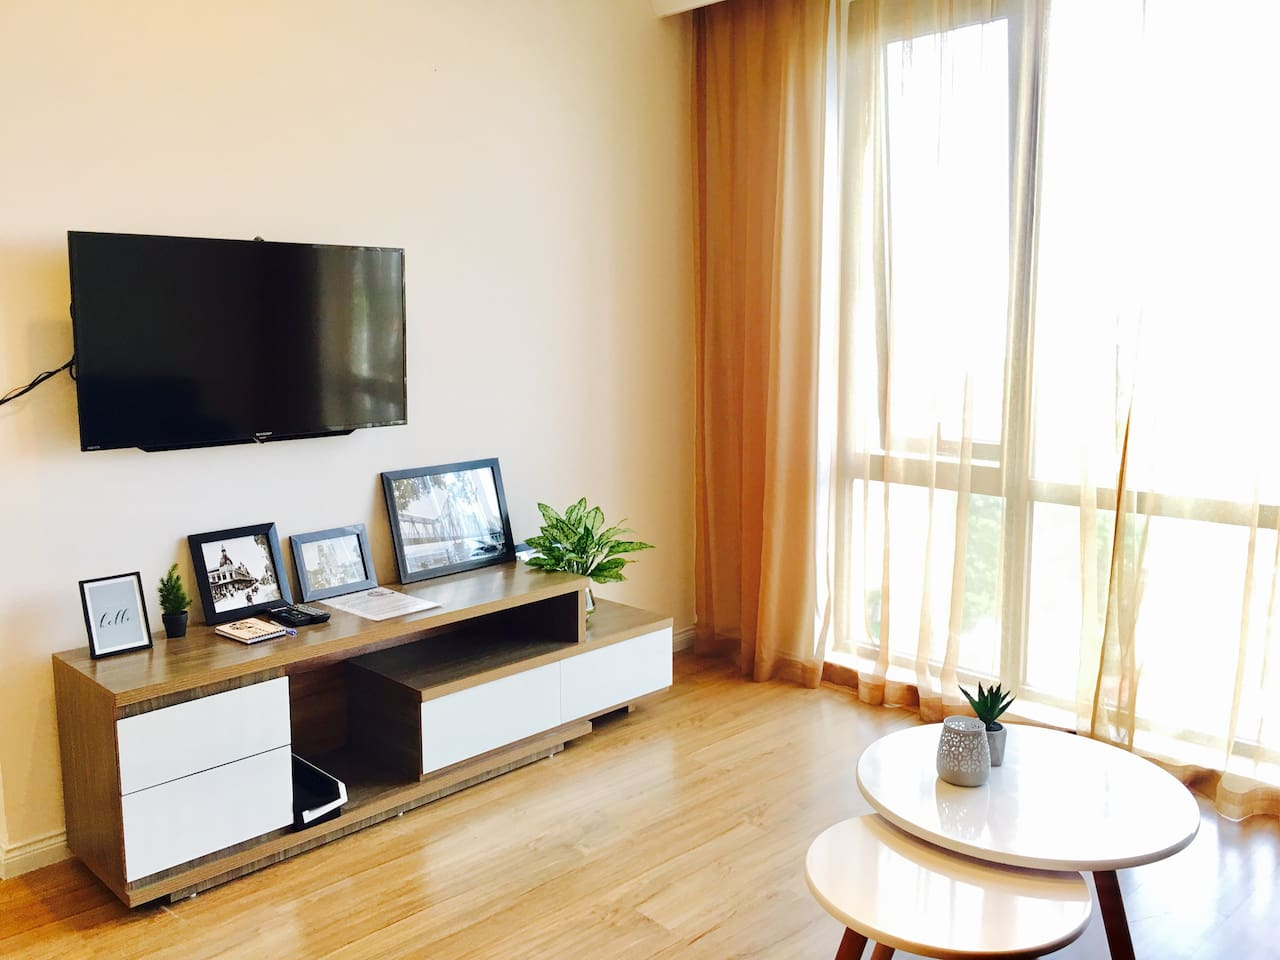 Stunning apartment with a great view at Mipec Riverside Building.